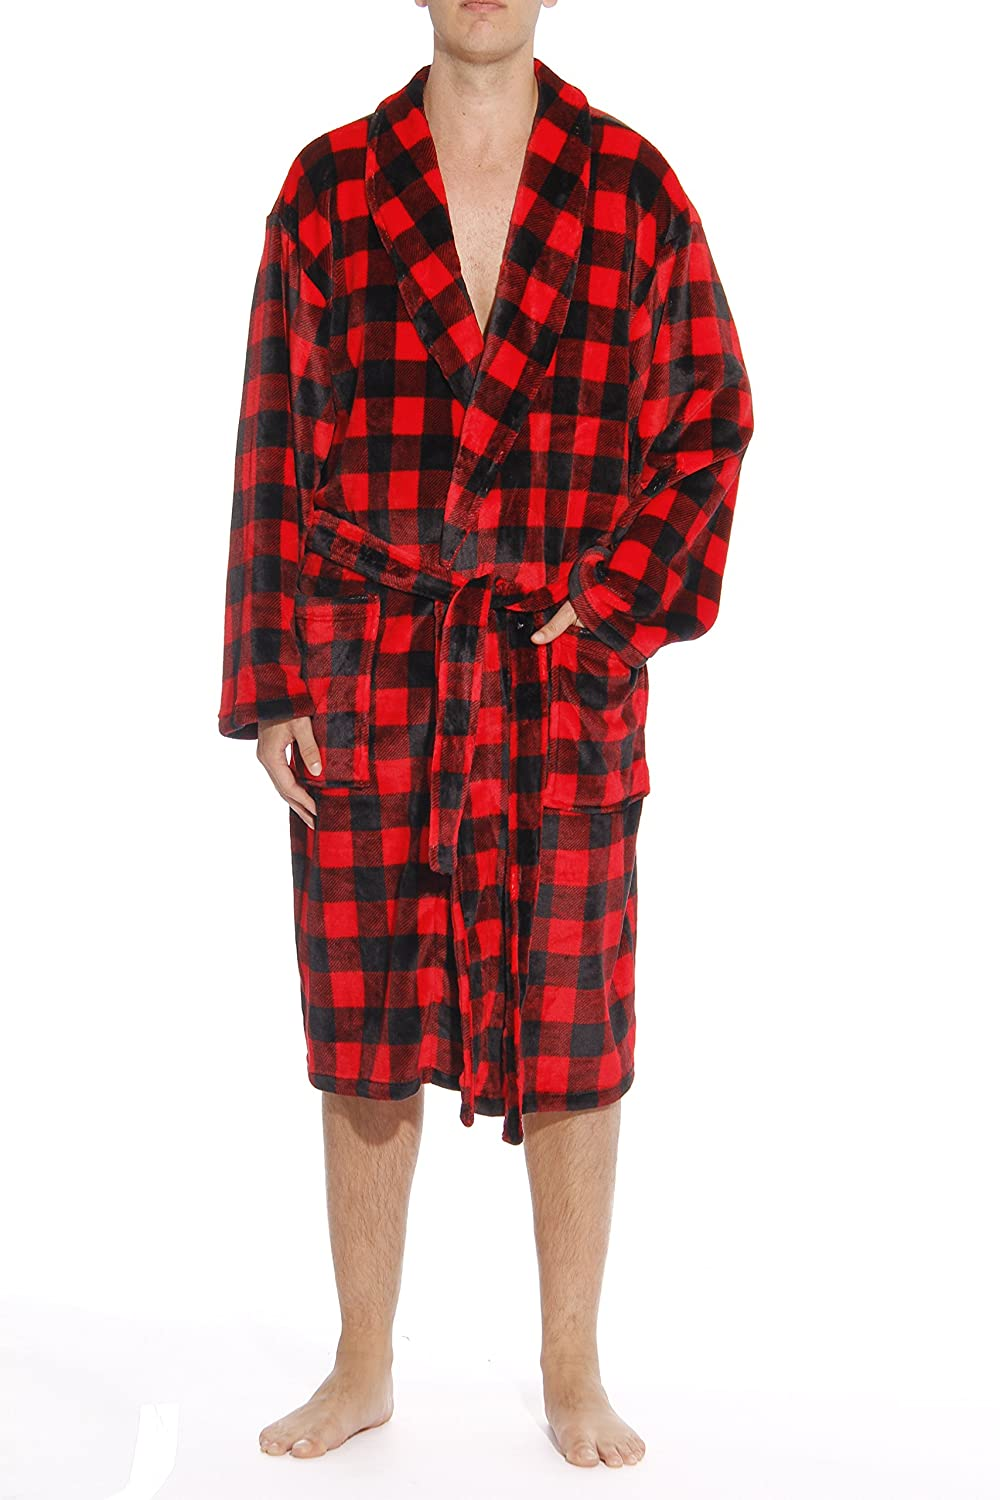 #followme Printed Plaid Velour Flannel Robe Robes for Men